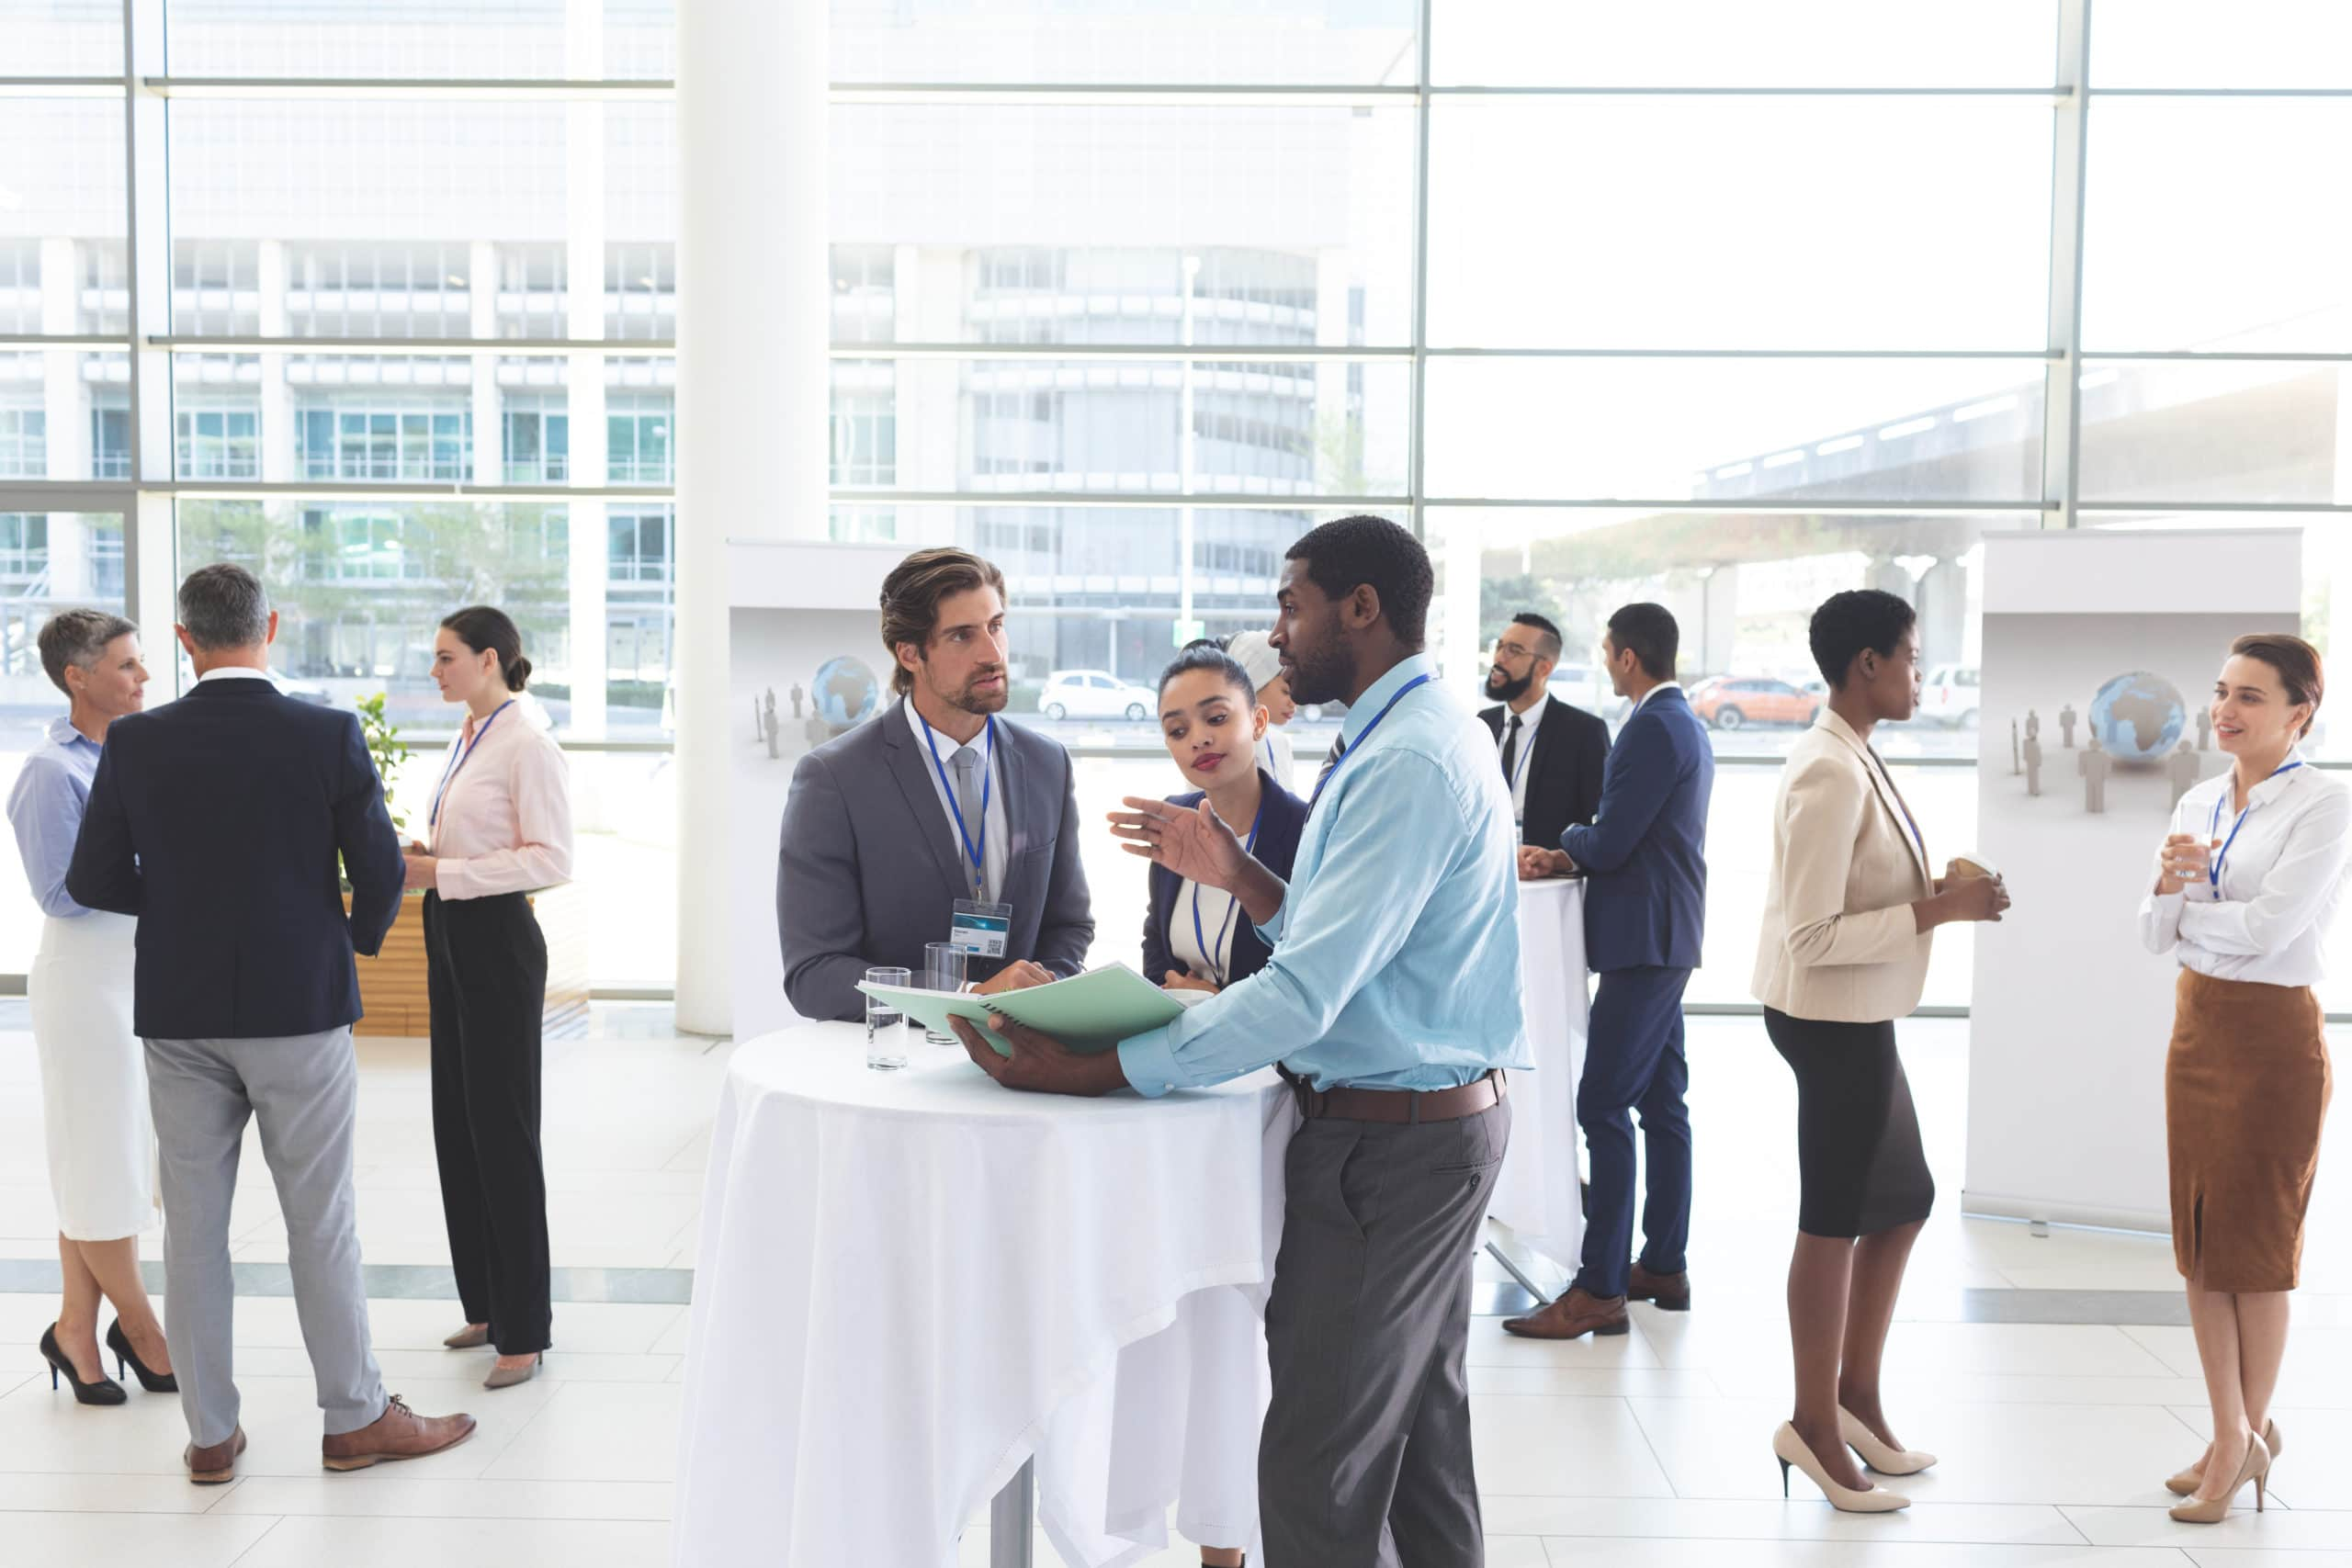 The Top 5 Benefits of Networking for Entrepreneurs